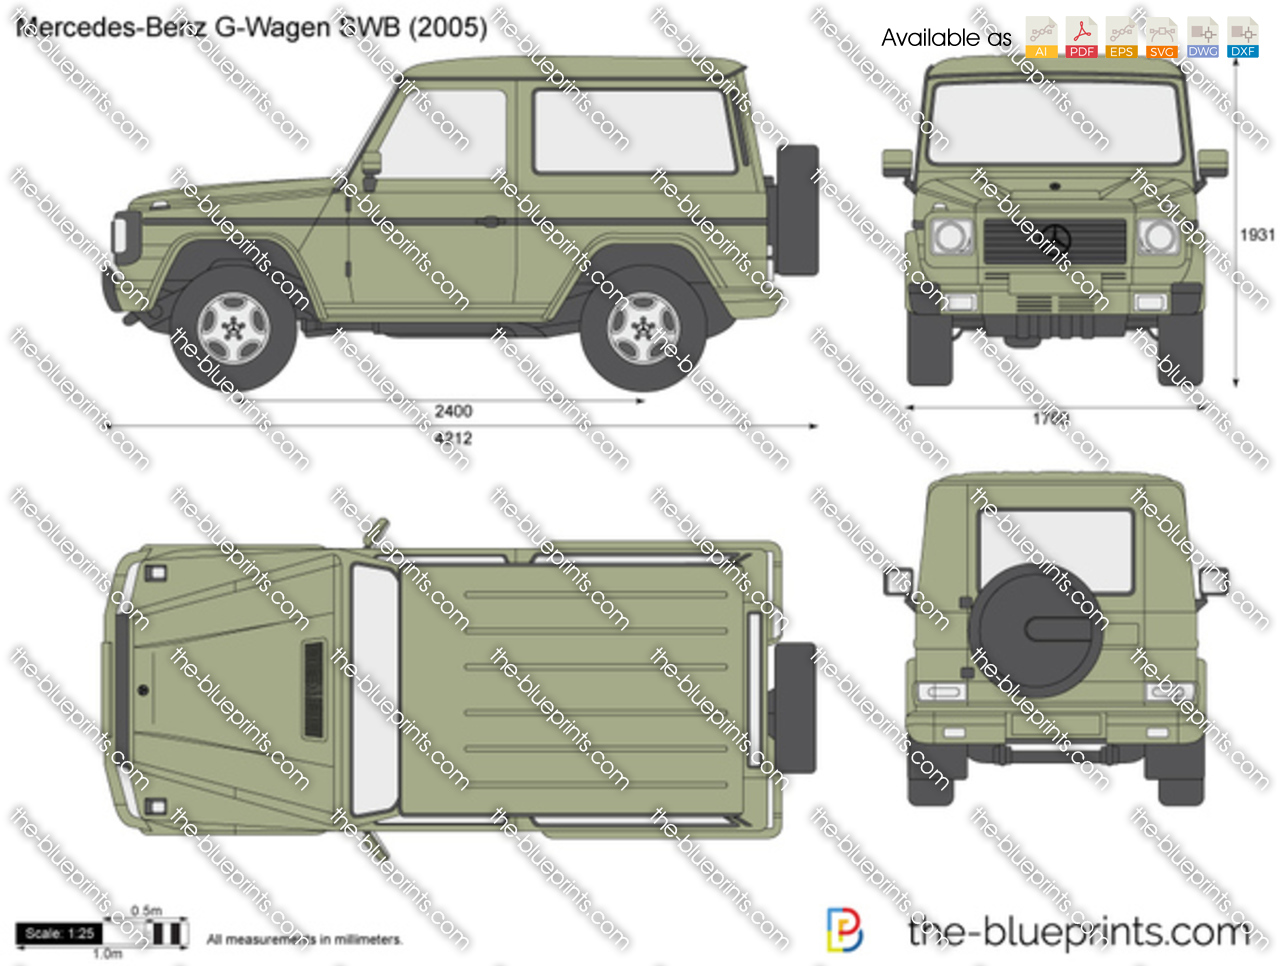 Mercedes benz g wagen swb w463 vector drawing for Mercedes benz w463 for sale